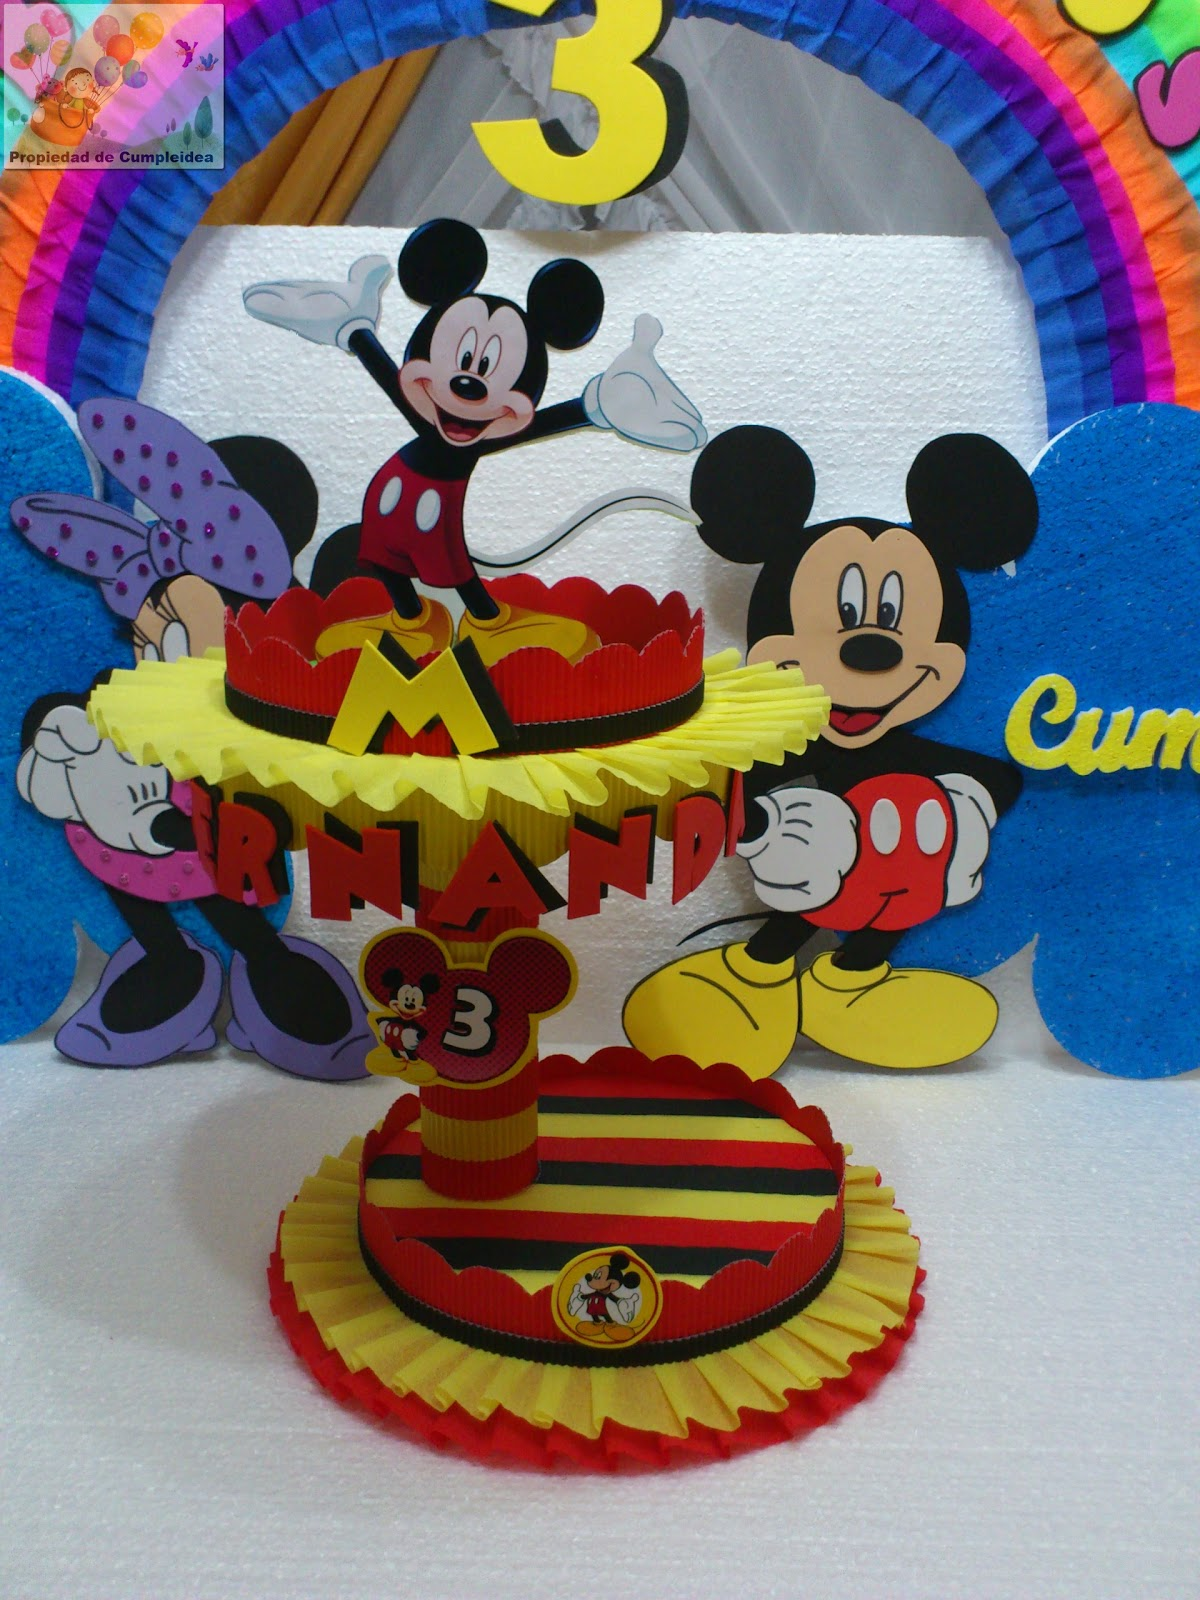 Mickey Mouse Decoraciones Para Fiestas ~ Pin Decoraciones Mickey Mouse Bebe Imagui Twiwaminenu Picture on